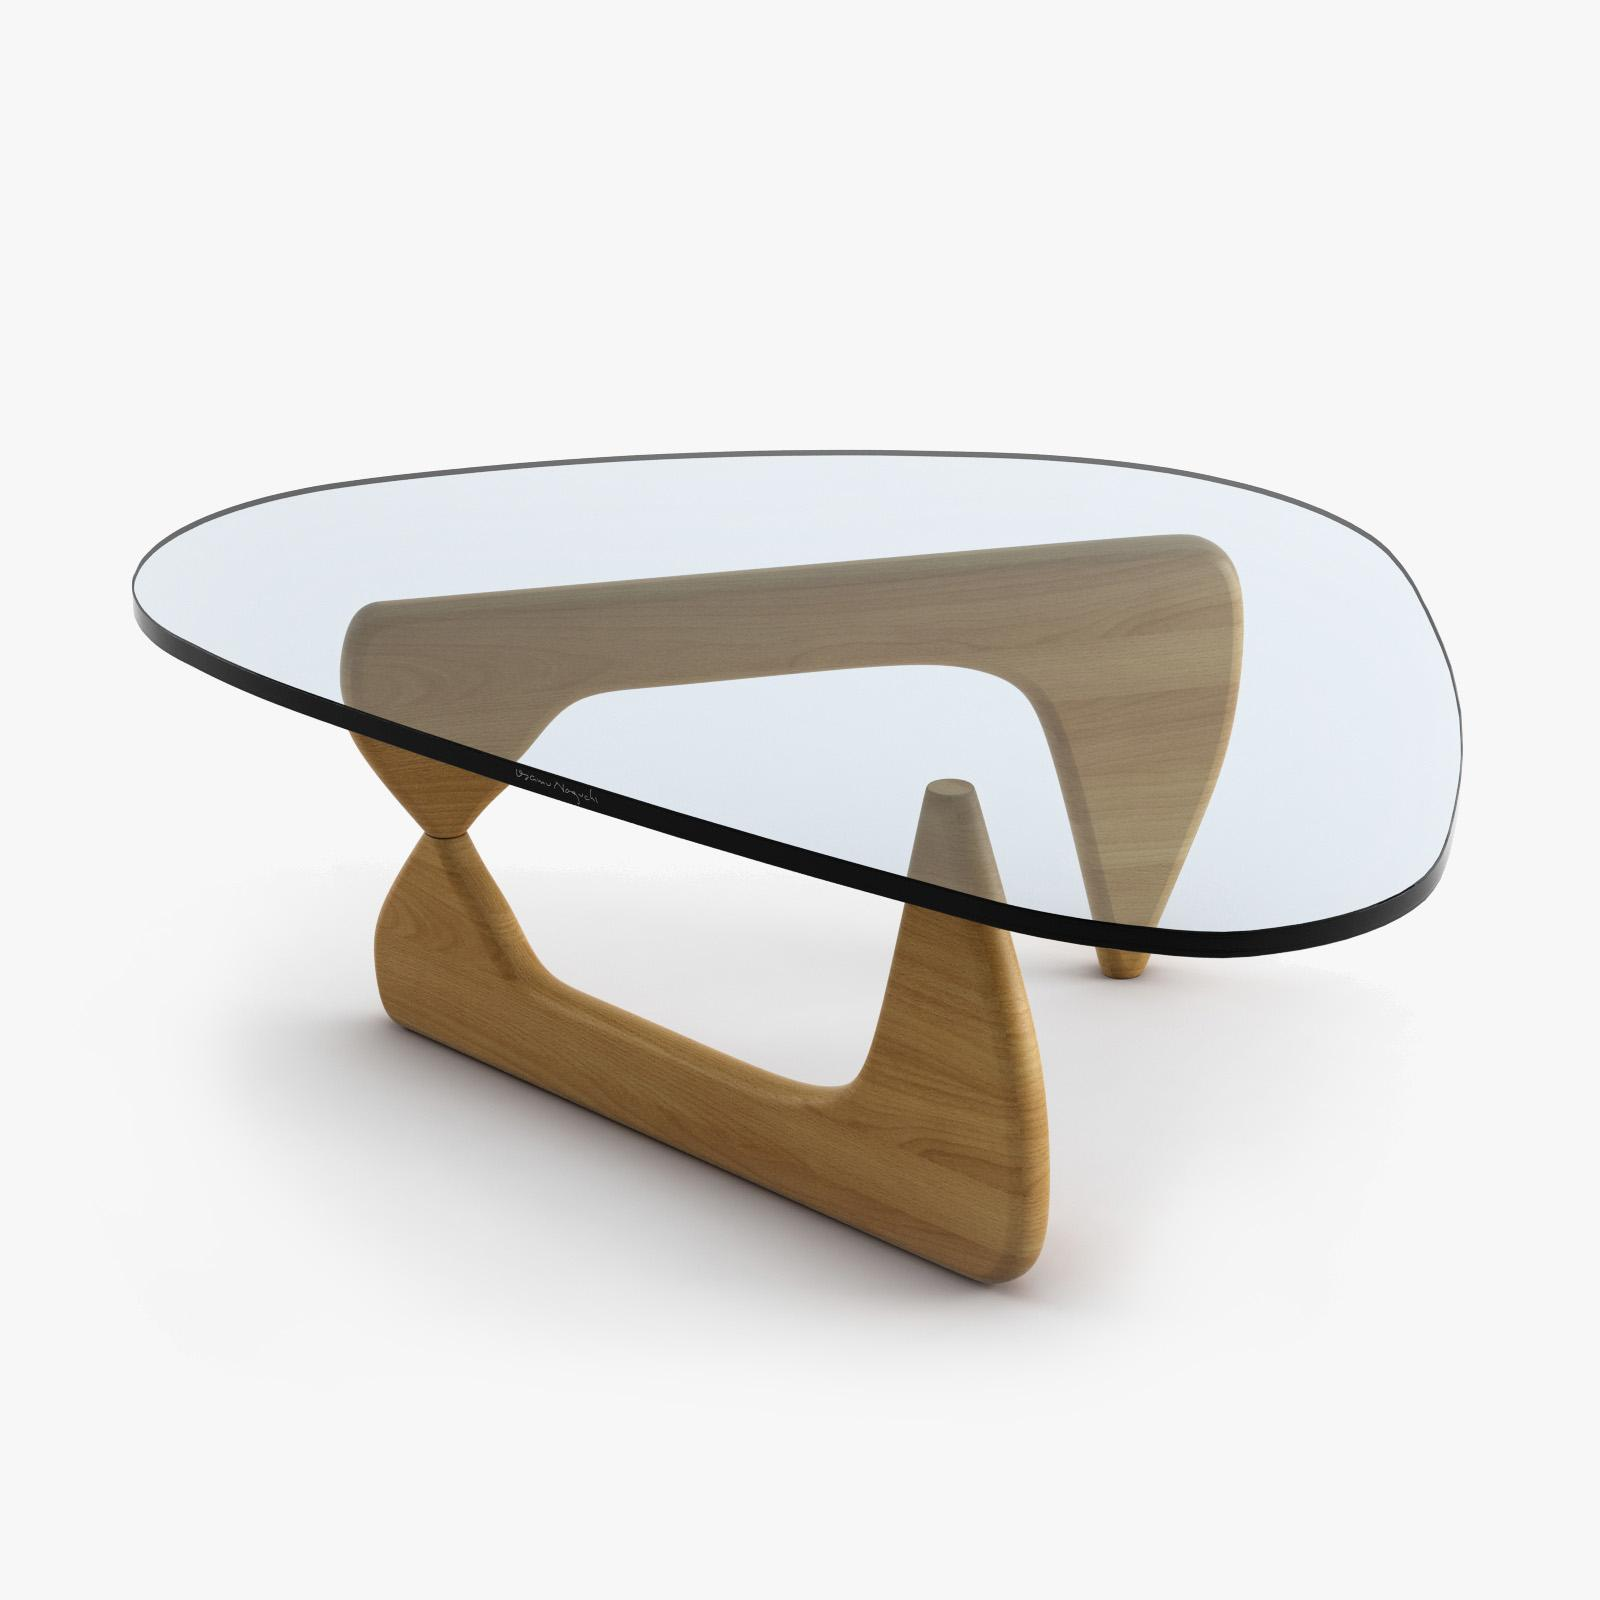 Herman Miller Noguchi Coffee Table - Stolik kawowy